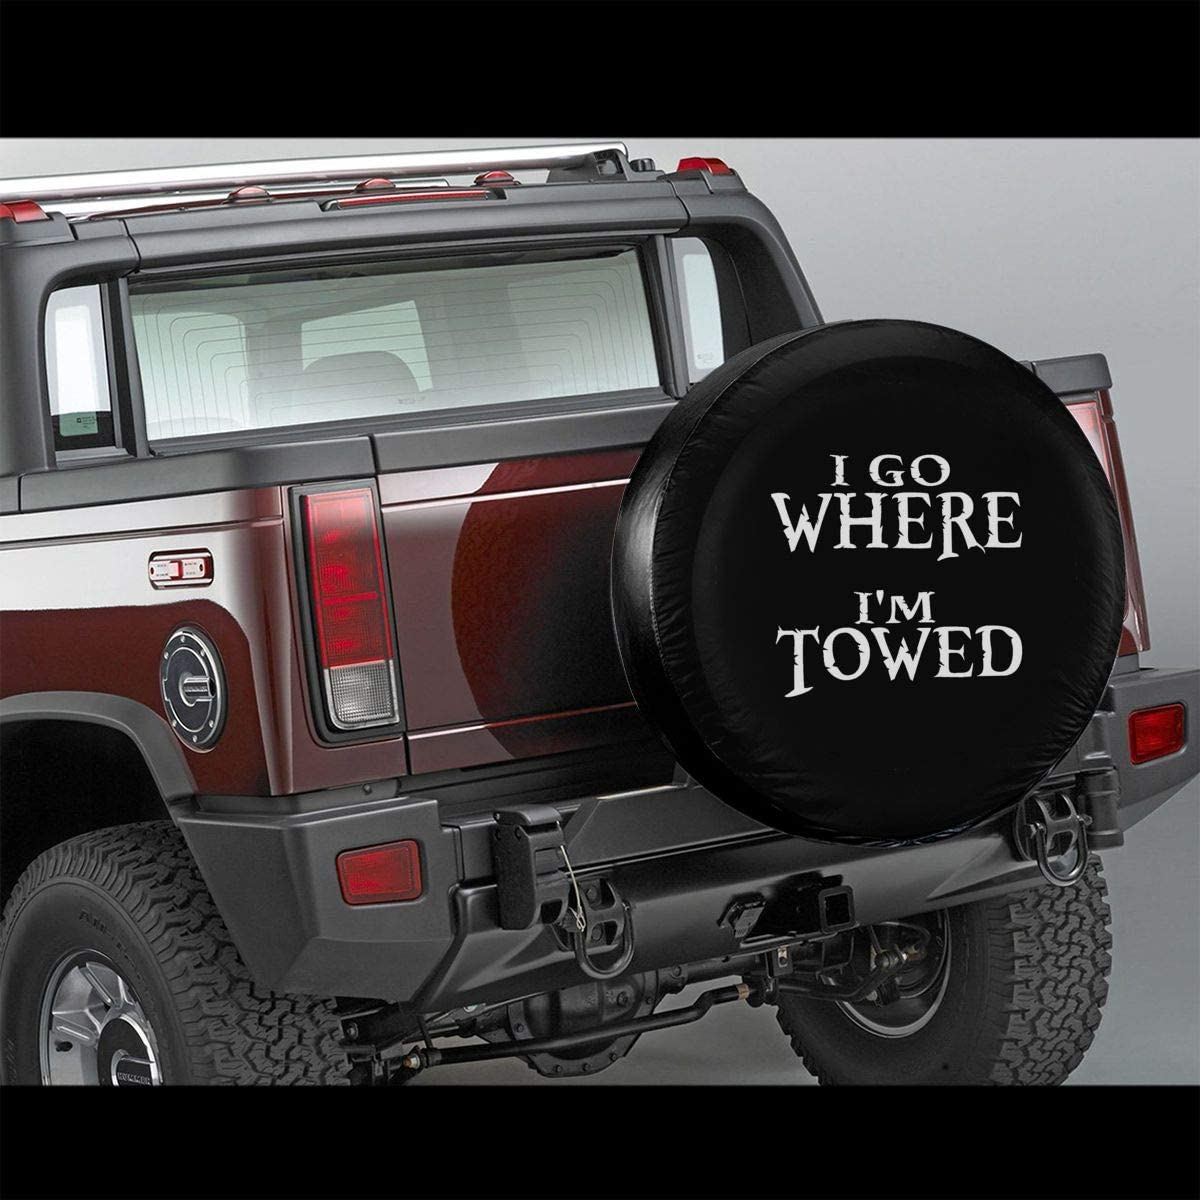 Spare Tire Cover for RV Jeep Wrangler Trailer Campers 14 15 16 17 Inch Wheel Water-Proof Dust-Proof and Sun Protection Uktly I Go Where Im Towed Tire Covers